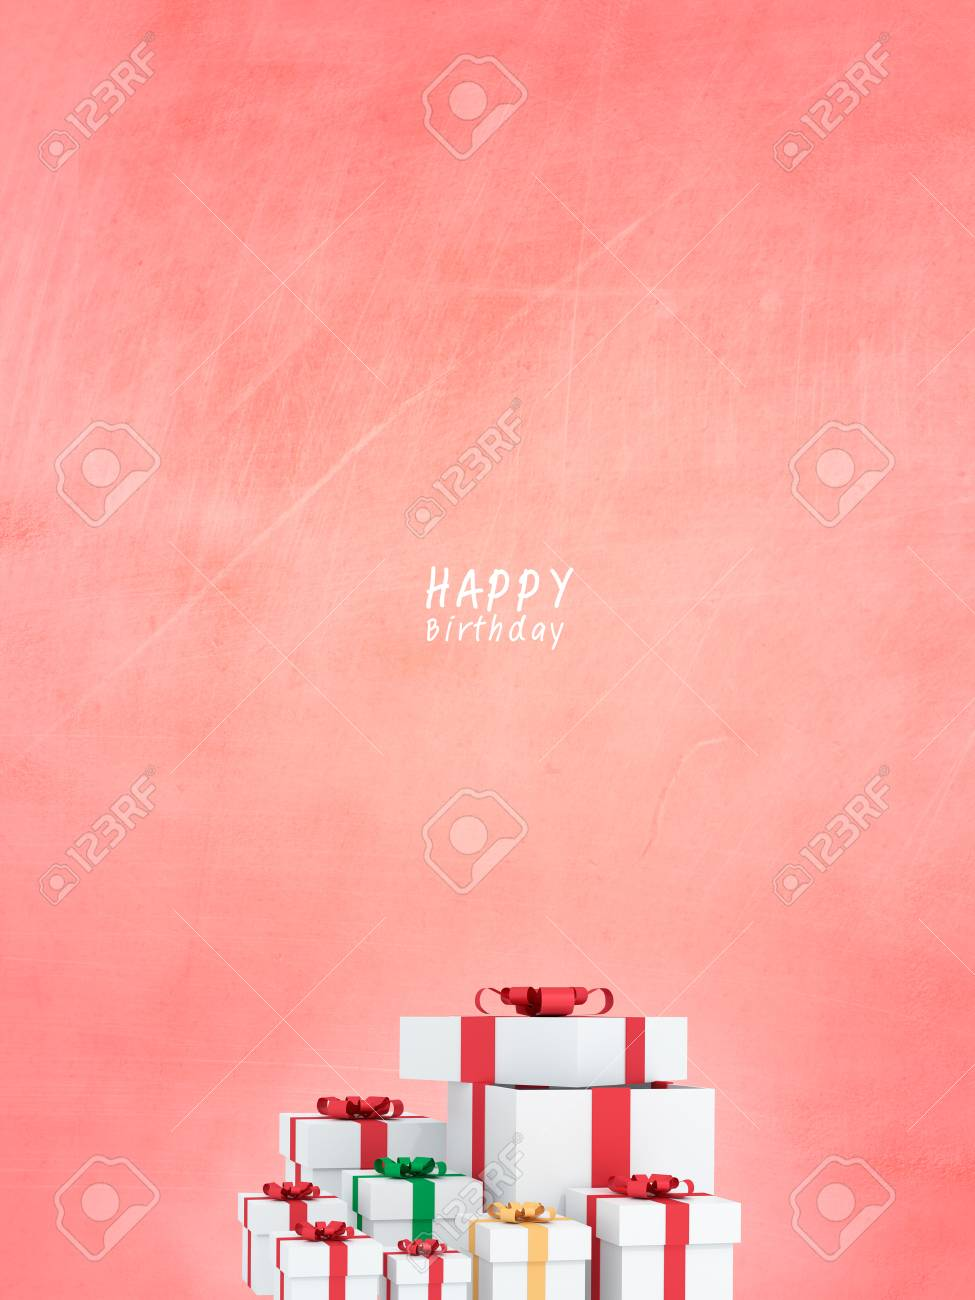 Many Happy Birthday Gift Boxes With Red Ribbons For Special Day